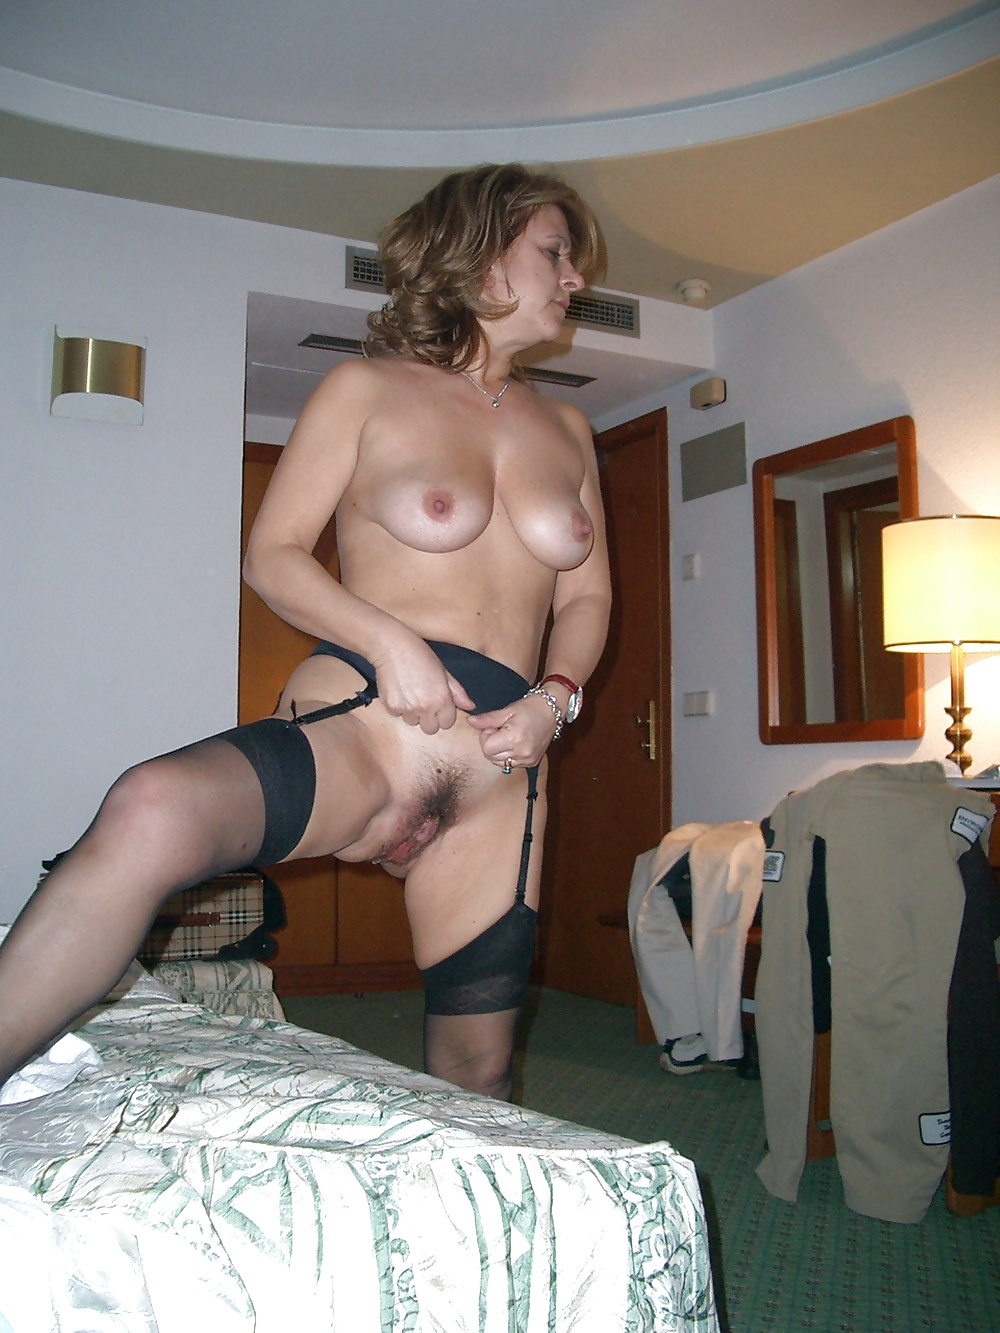 http://hotamateurmature.com/gallery/Mature_housewives_and_sexy_grannies_16/18.jpg